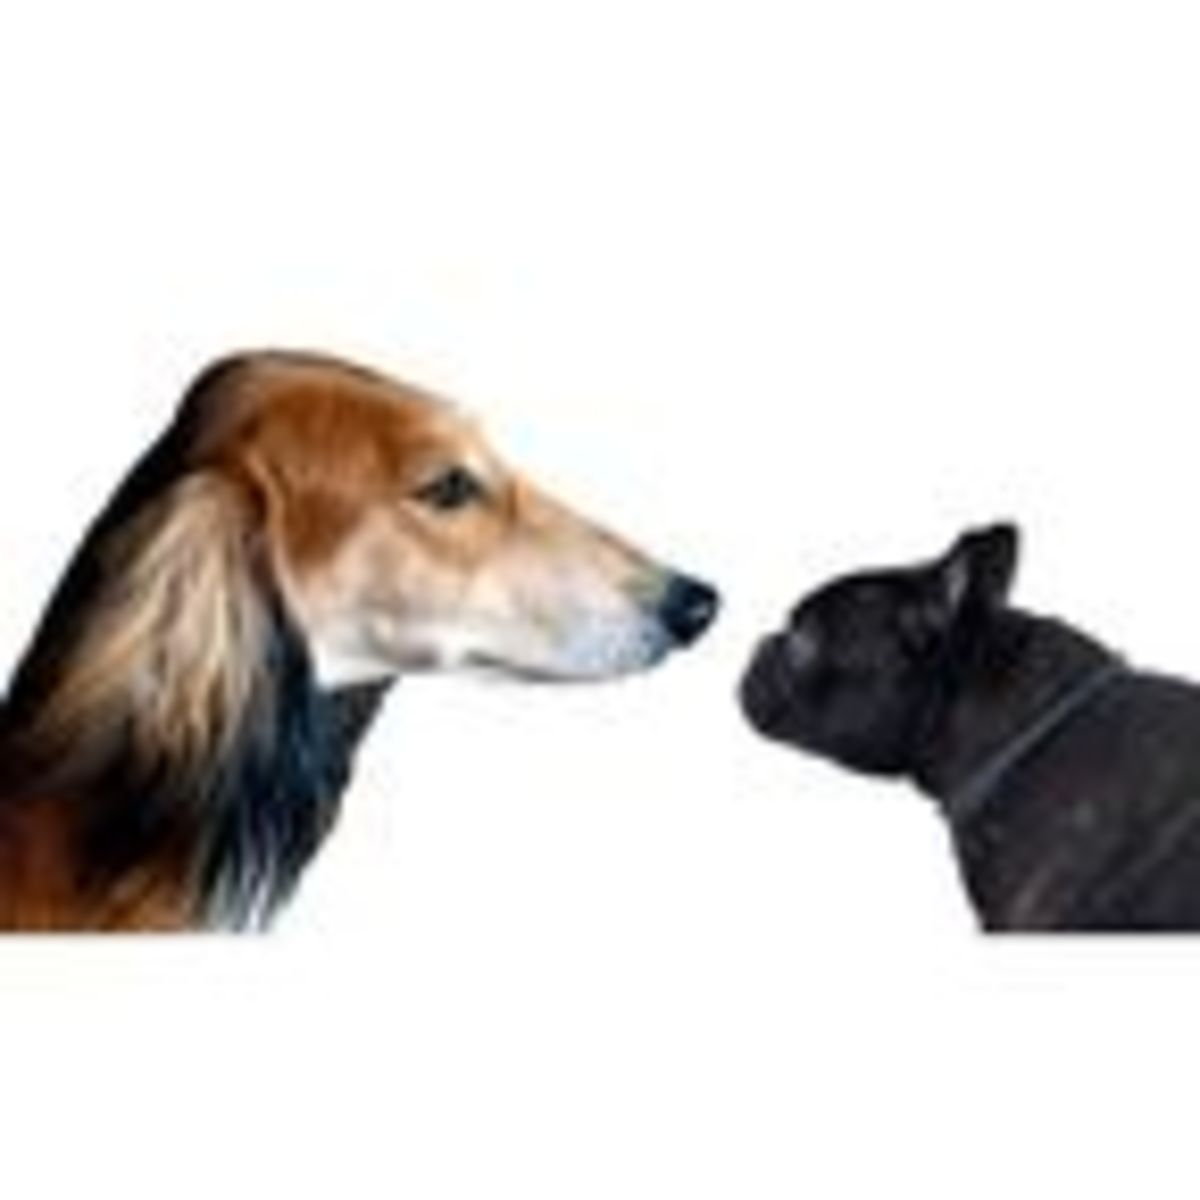 A Dog's Size and Head Shape Predicts Its Behavior